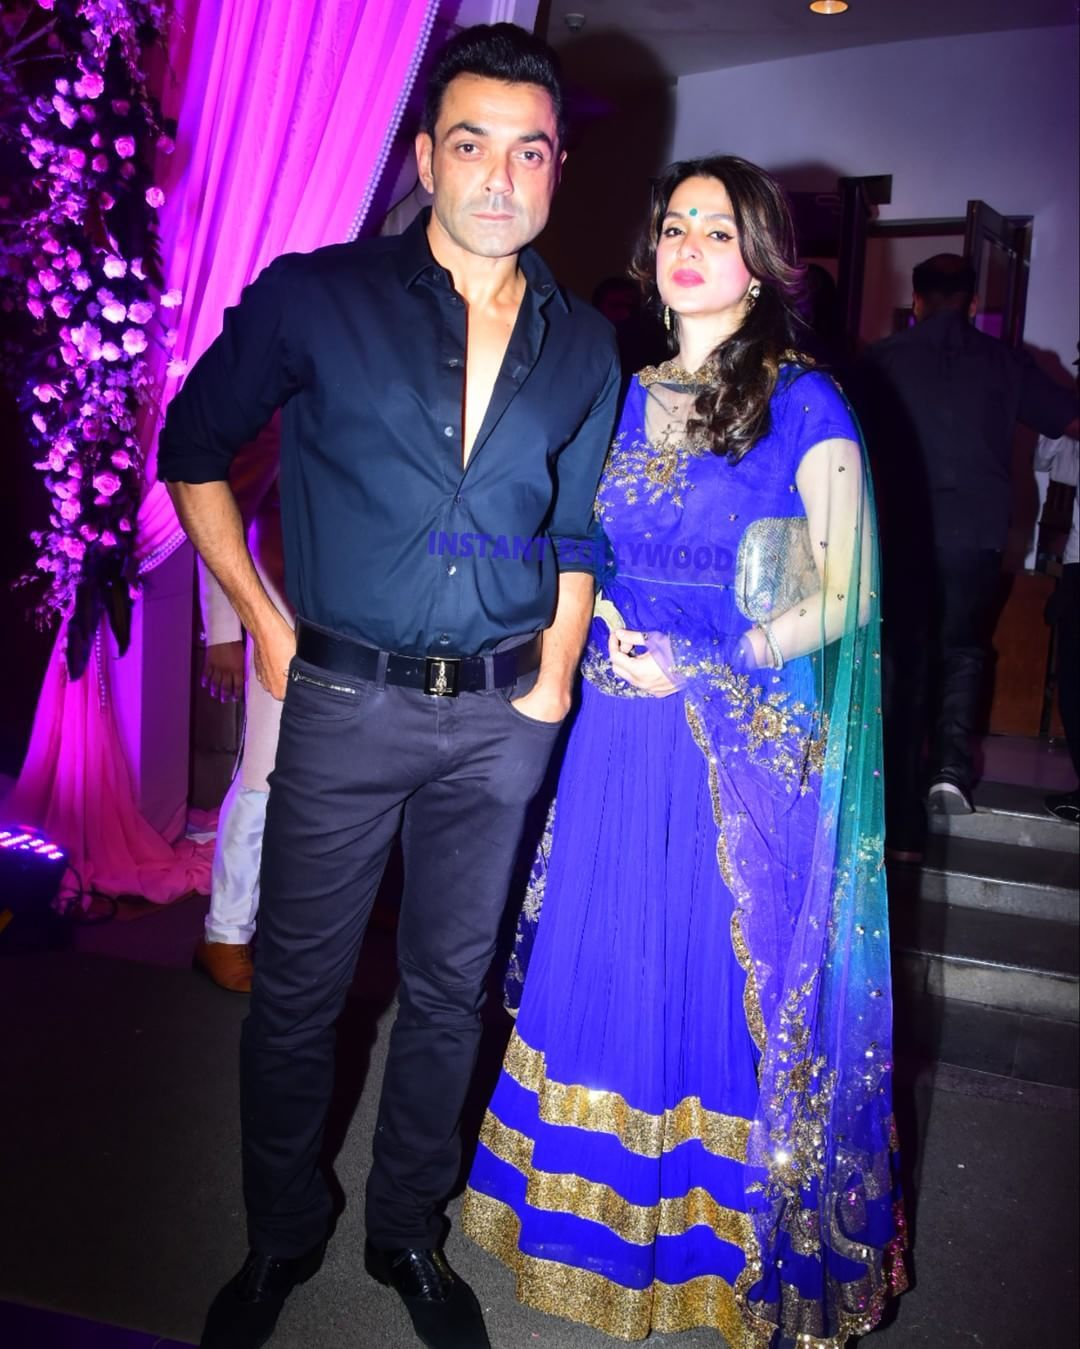 Bobby Deol With His Beautiful Wife Tania Deol At A Wedding Reception